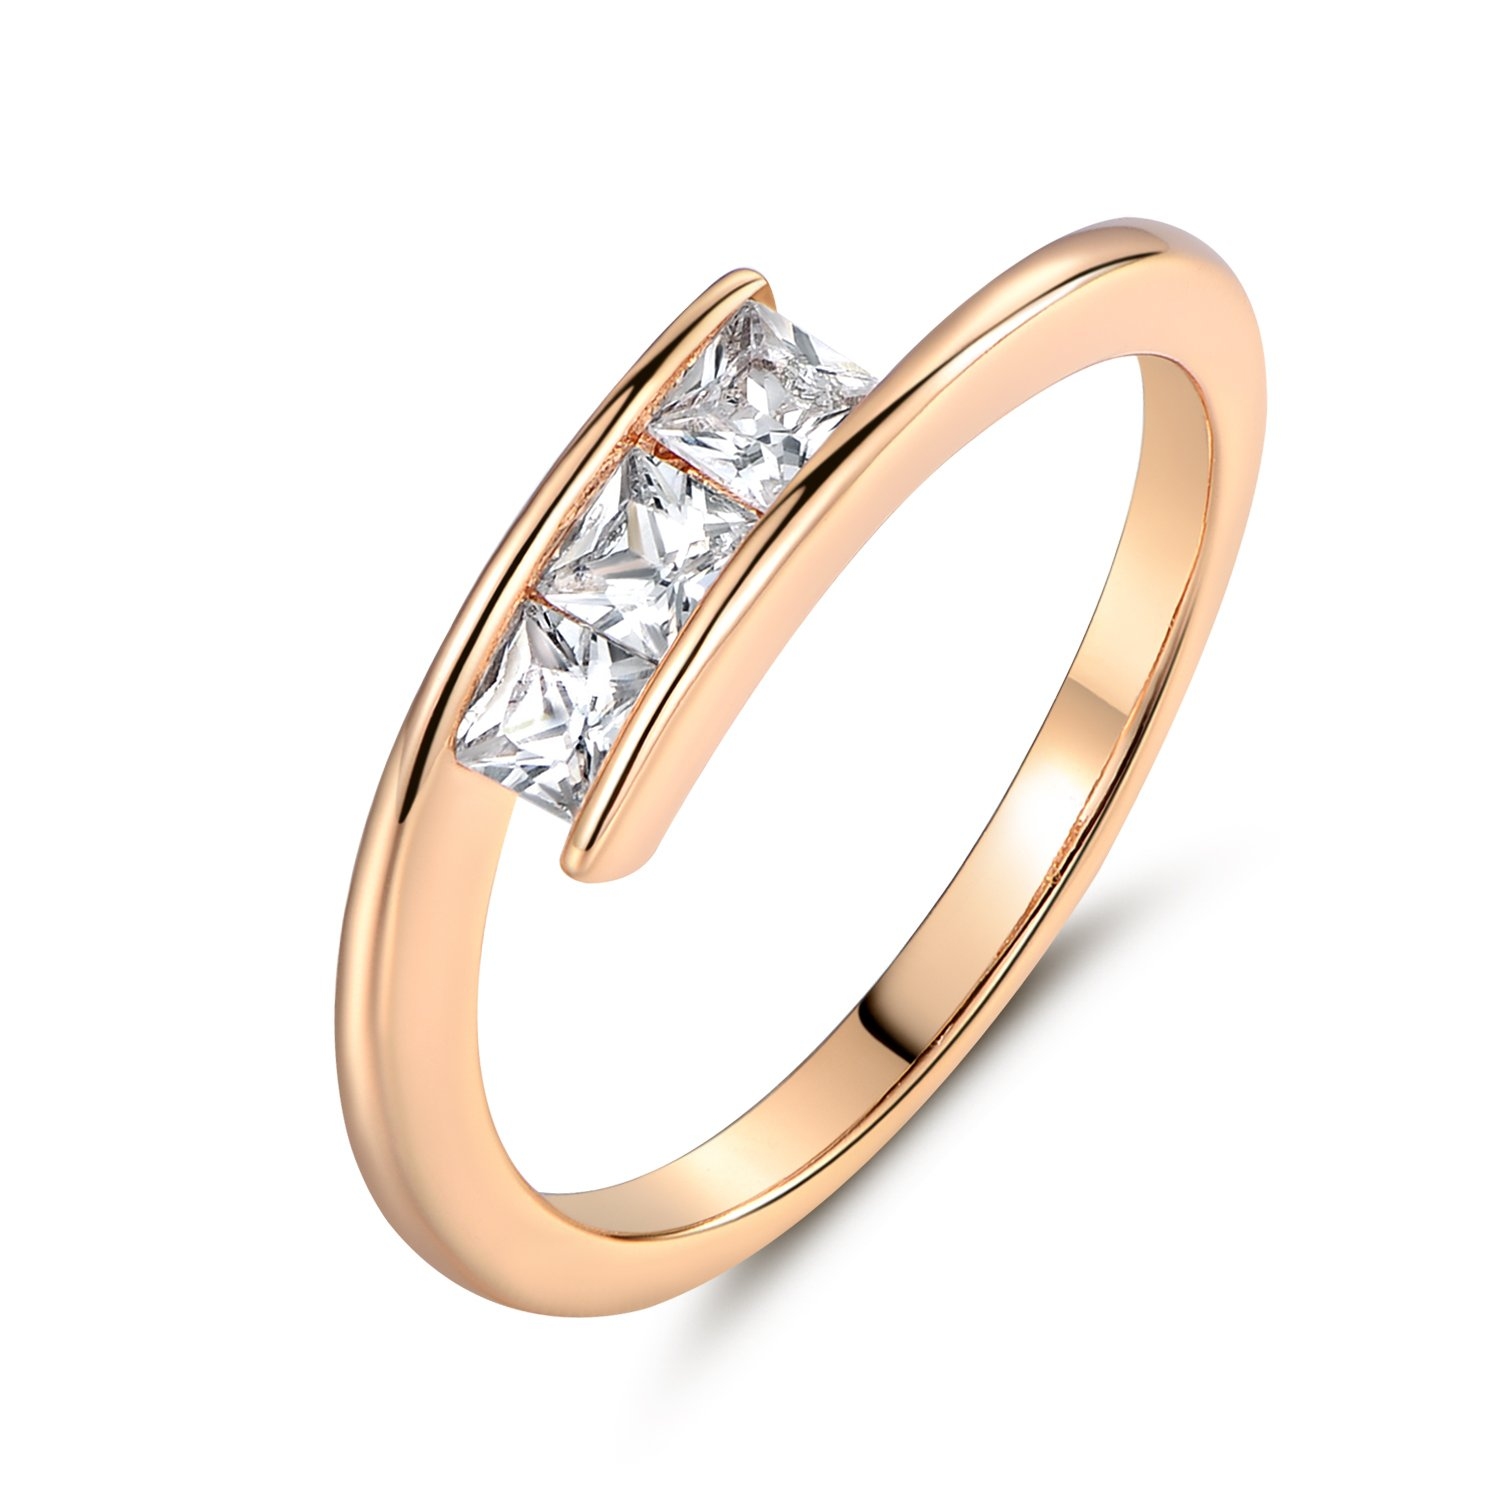 GULICX Princess Ring Square White Cubic Zirconia Tension Set Yellow Gold Tone Promise Band for Women